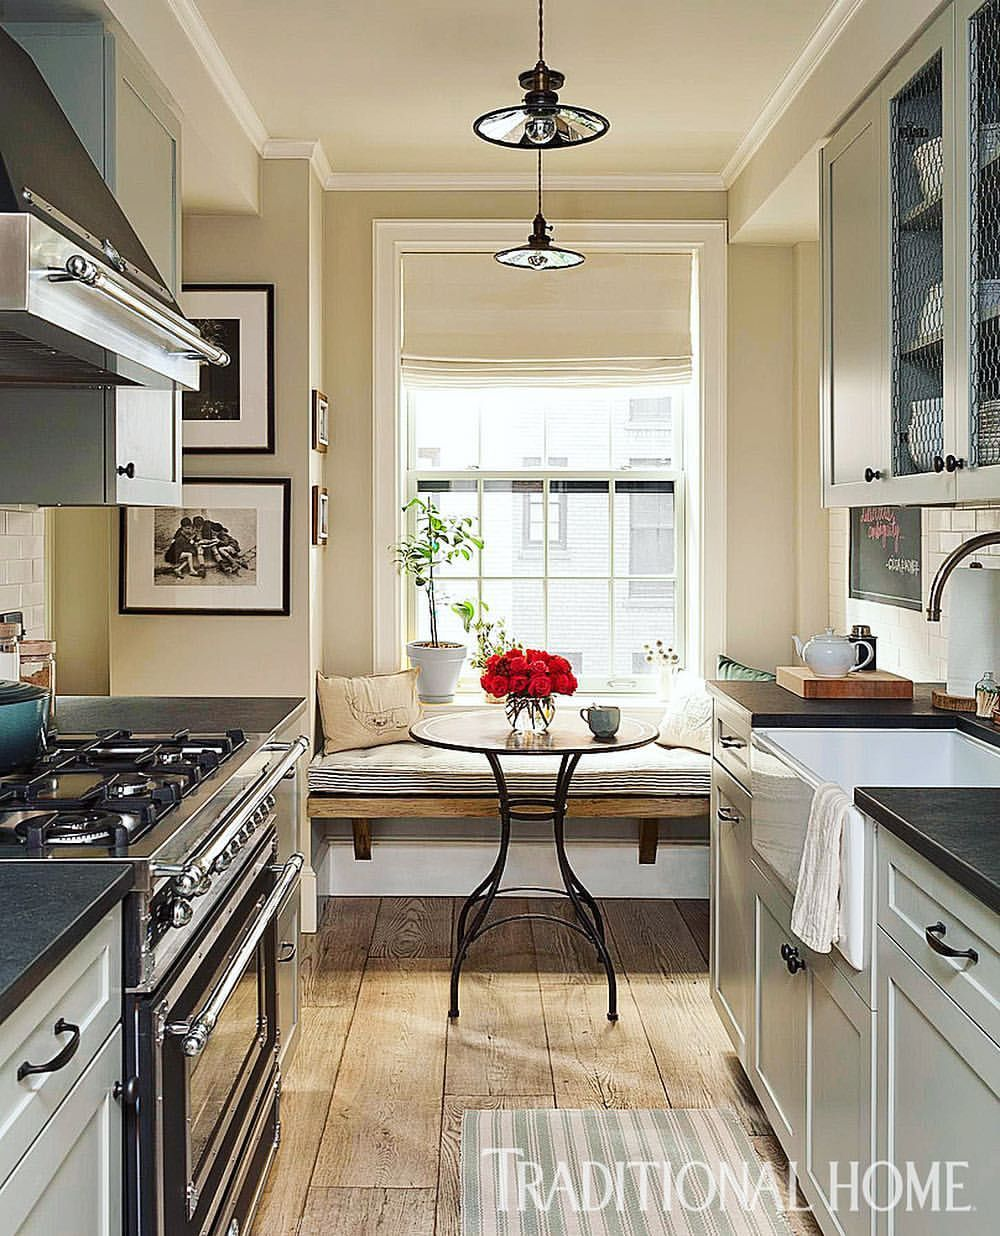 Traditionalhome Design Ideas: A Heritage-style Range, Reclaimed Wood-plank Floors, A